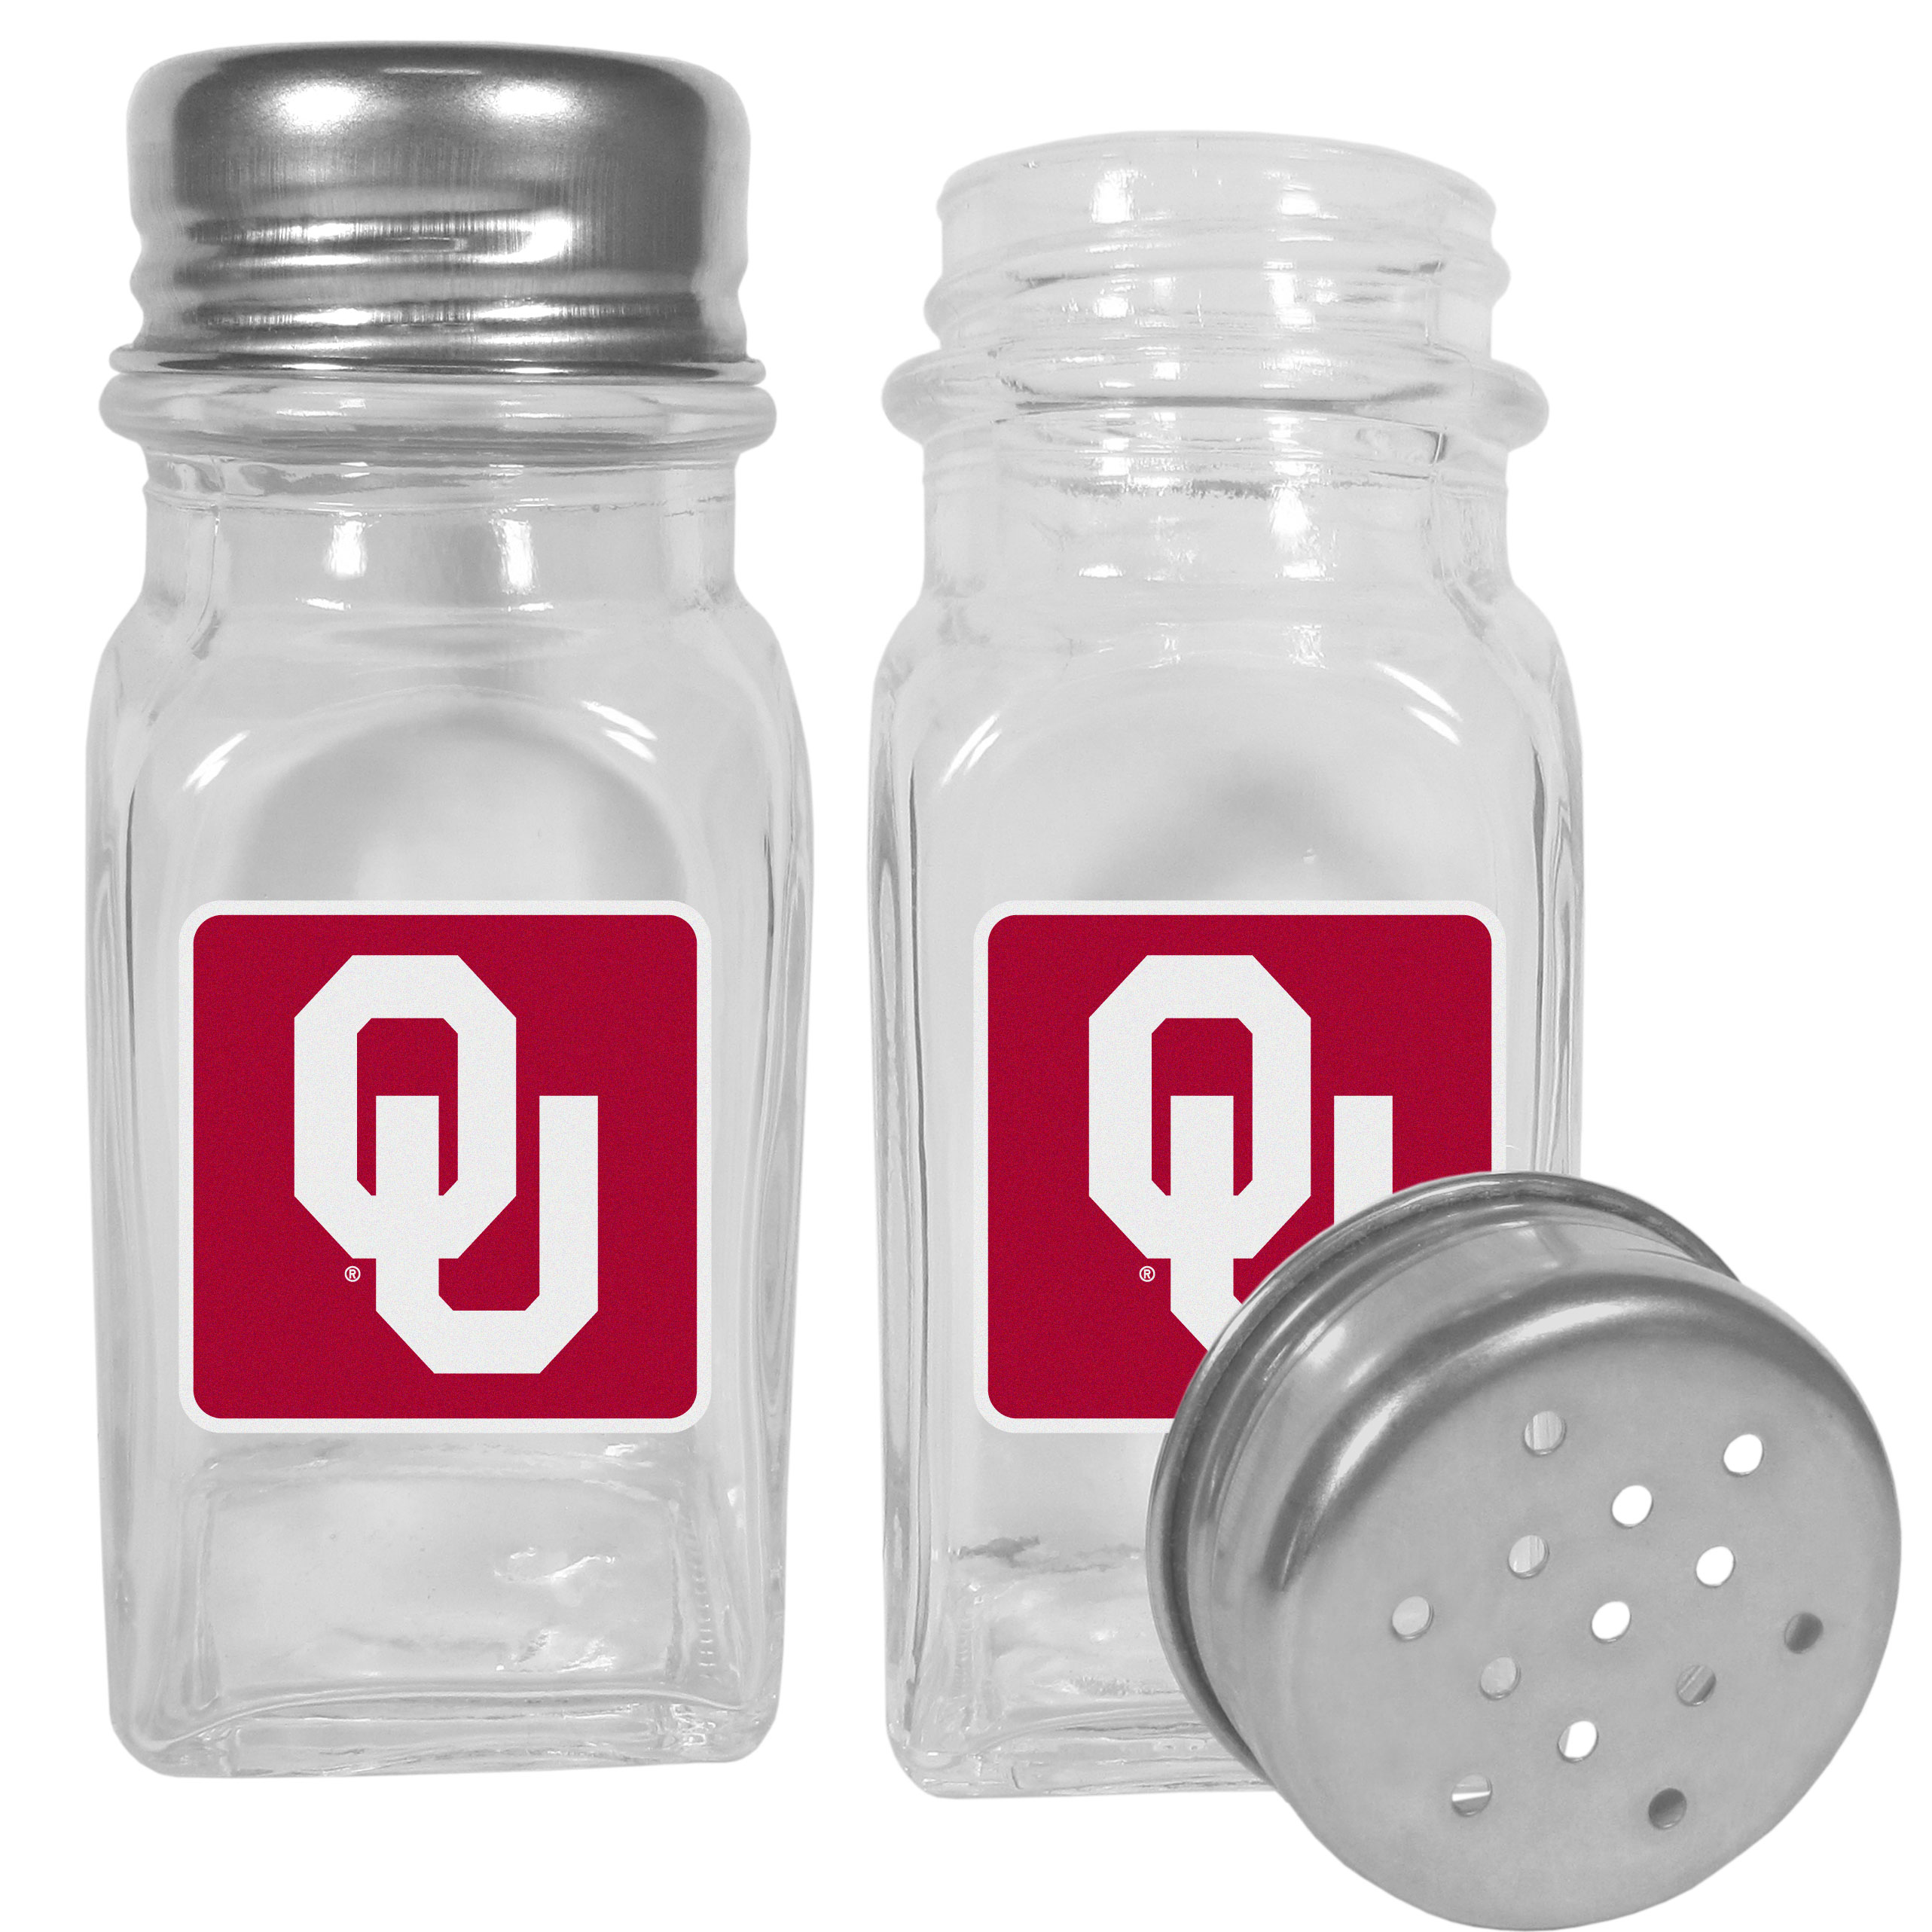 Oklahoma Sooners Graphics Salt and Pepper Shaker - No tailgate party is complete without your Oklahoma Sooners salt & pepper shakers featuring bright team logos. The diner replica salt and pepper shakers are glass with screw top lids. These team shakers are a great grill accessory whether you are barbecuing on the patio, picnicing or having a game day party.